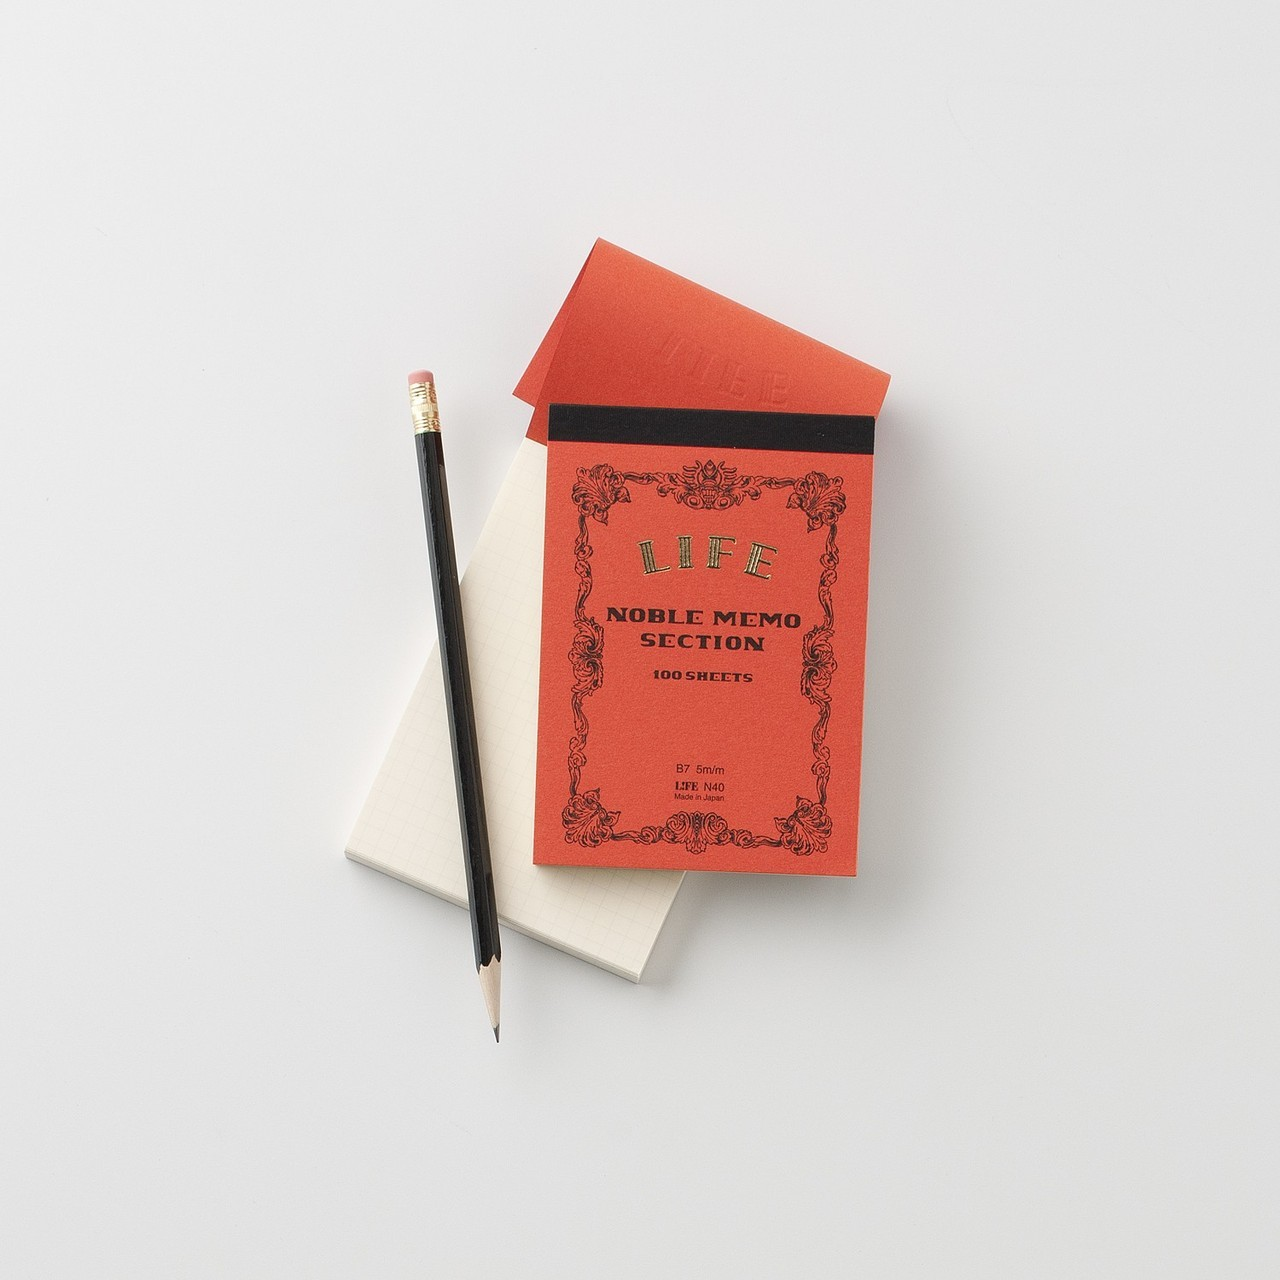 NOBLE MEMO Grid Paper Note Pad at Schoolhouse